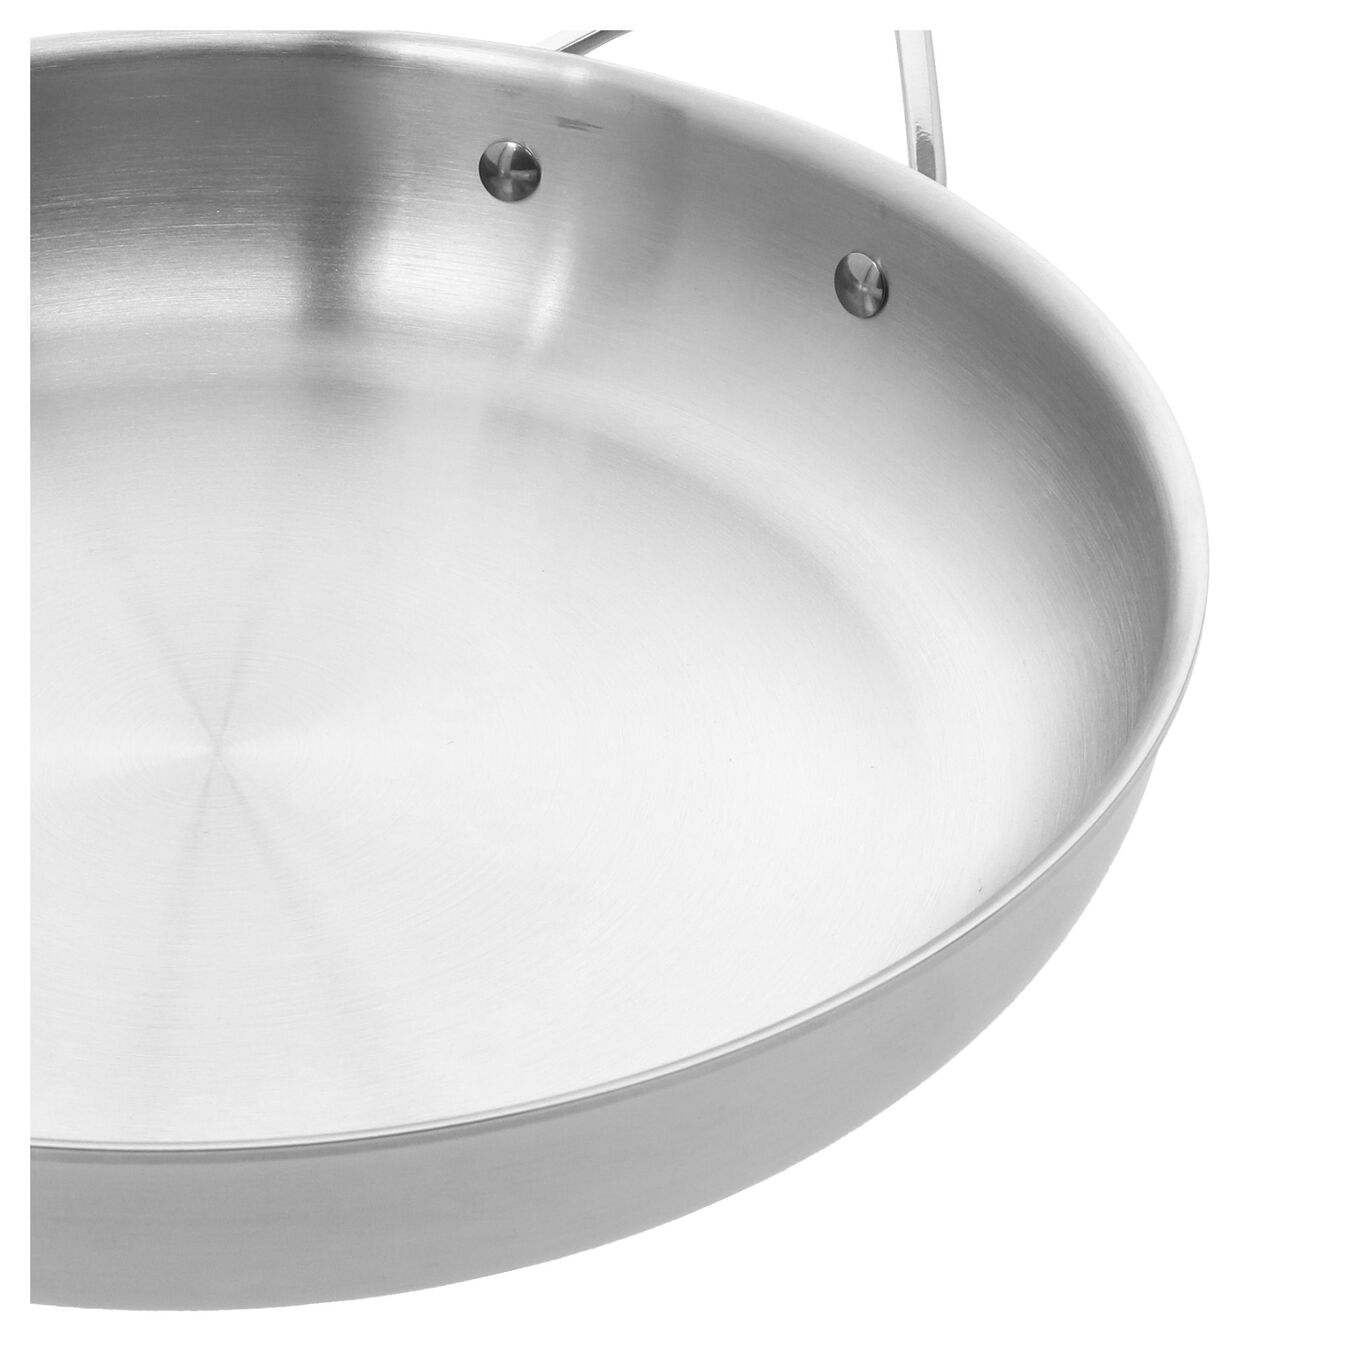 32 cm / 12.5 inch frying pan with lid,,large 6